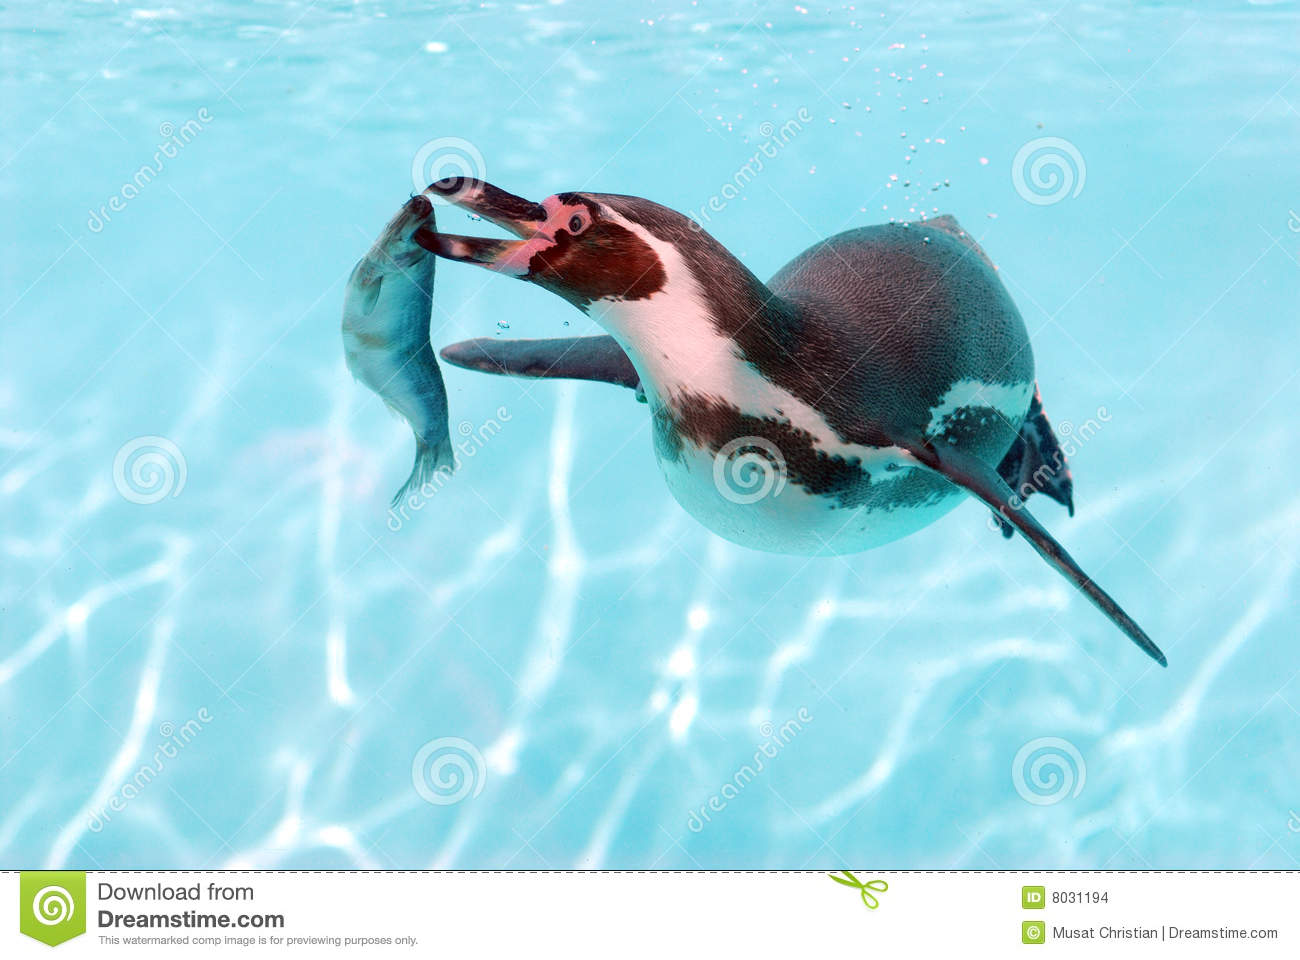 Penguins catching fish